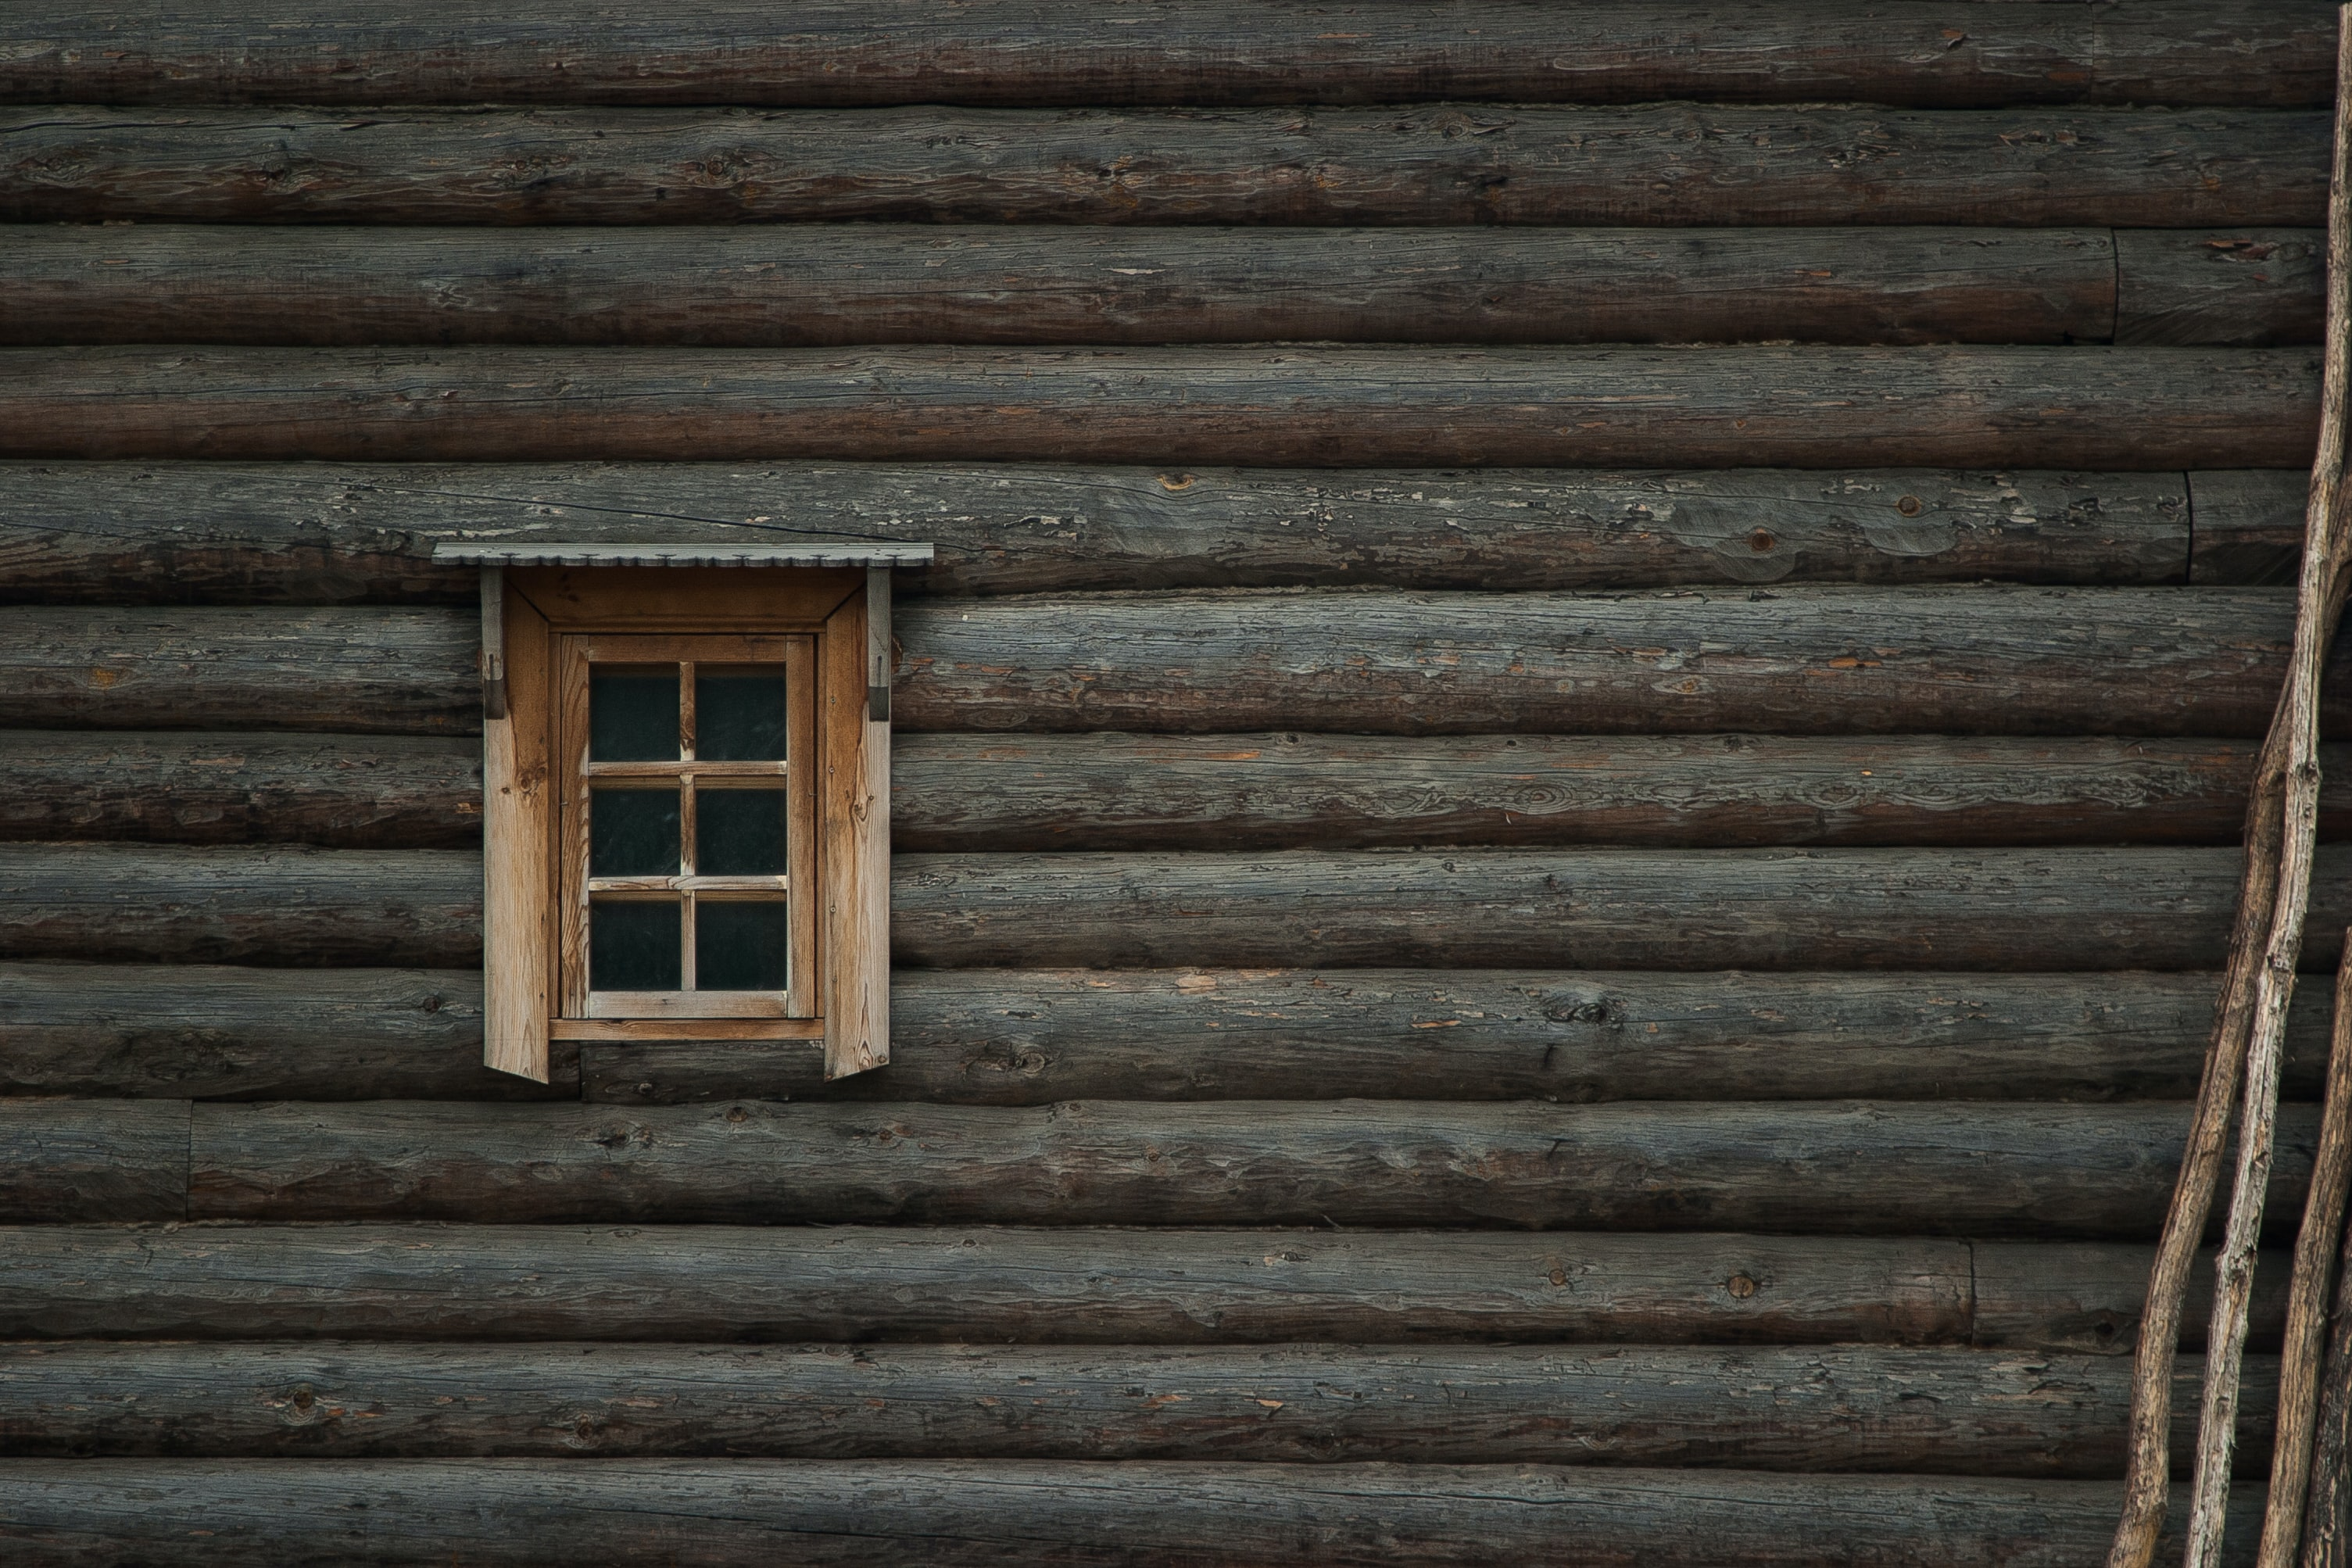 The Wall Of A Log Cabin With A Small Wooden Window To The Left And Some